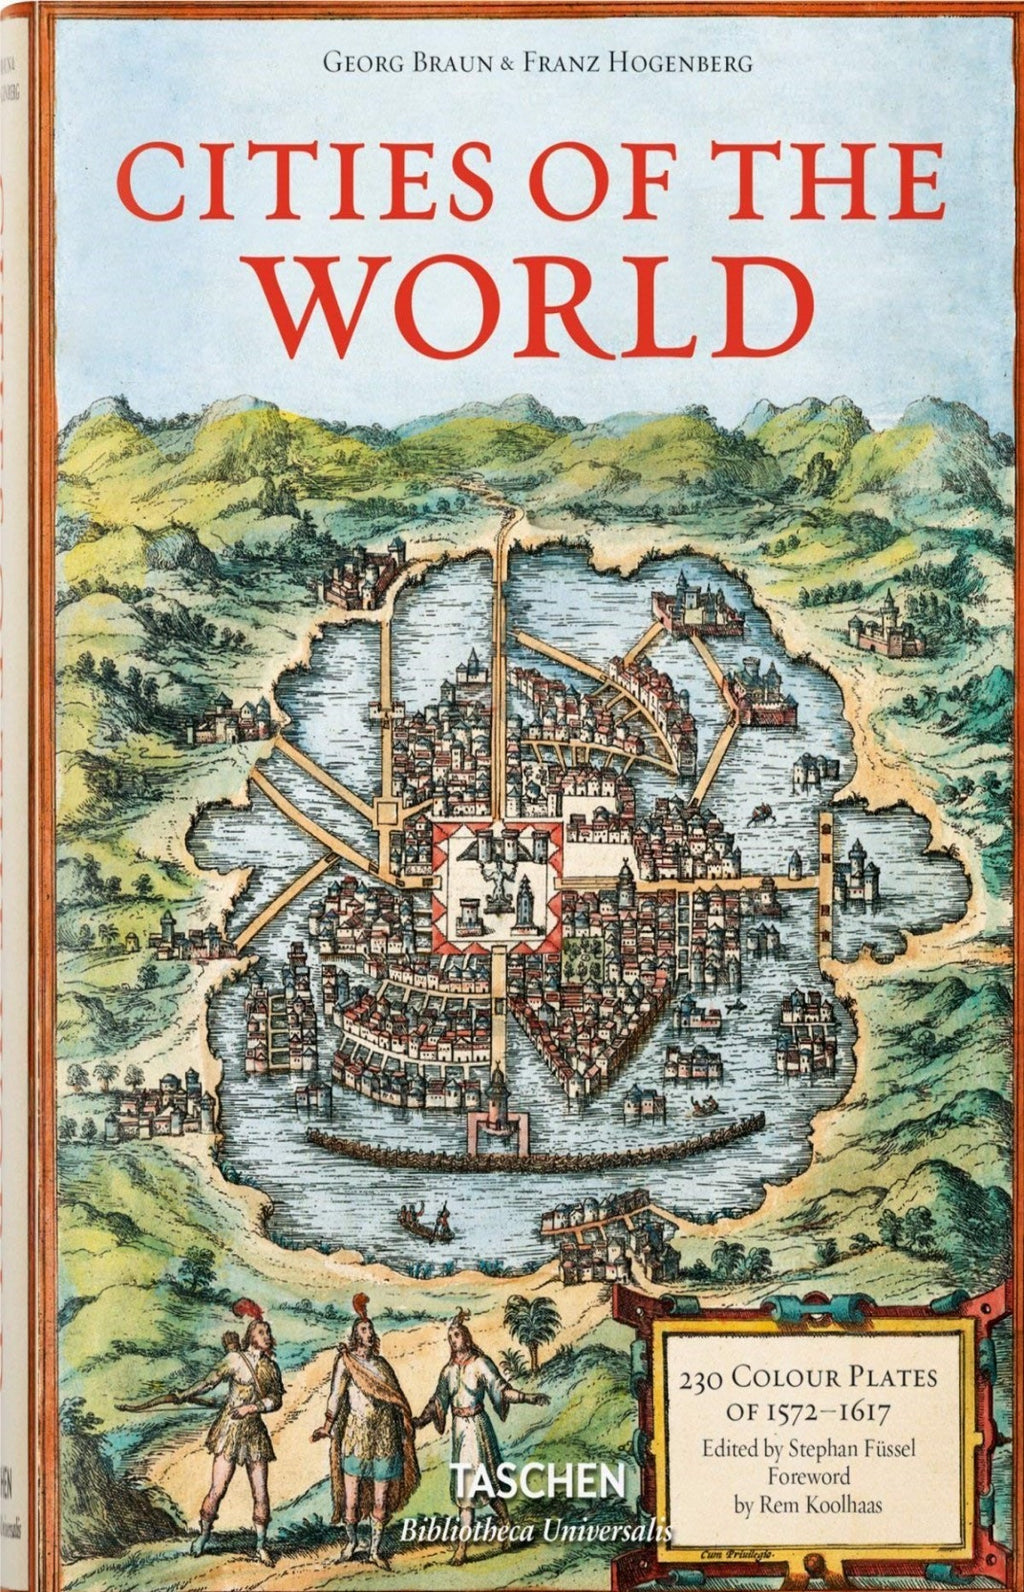 Cities of the World - Bibliotheca Universalis